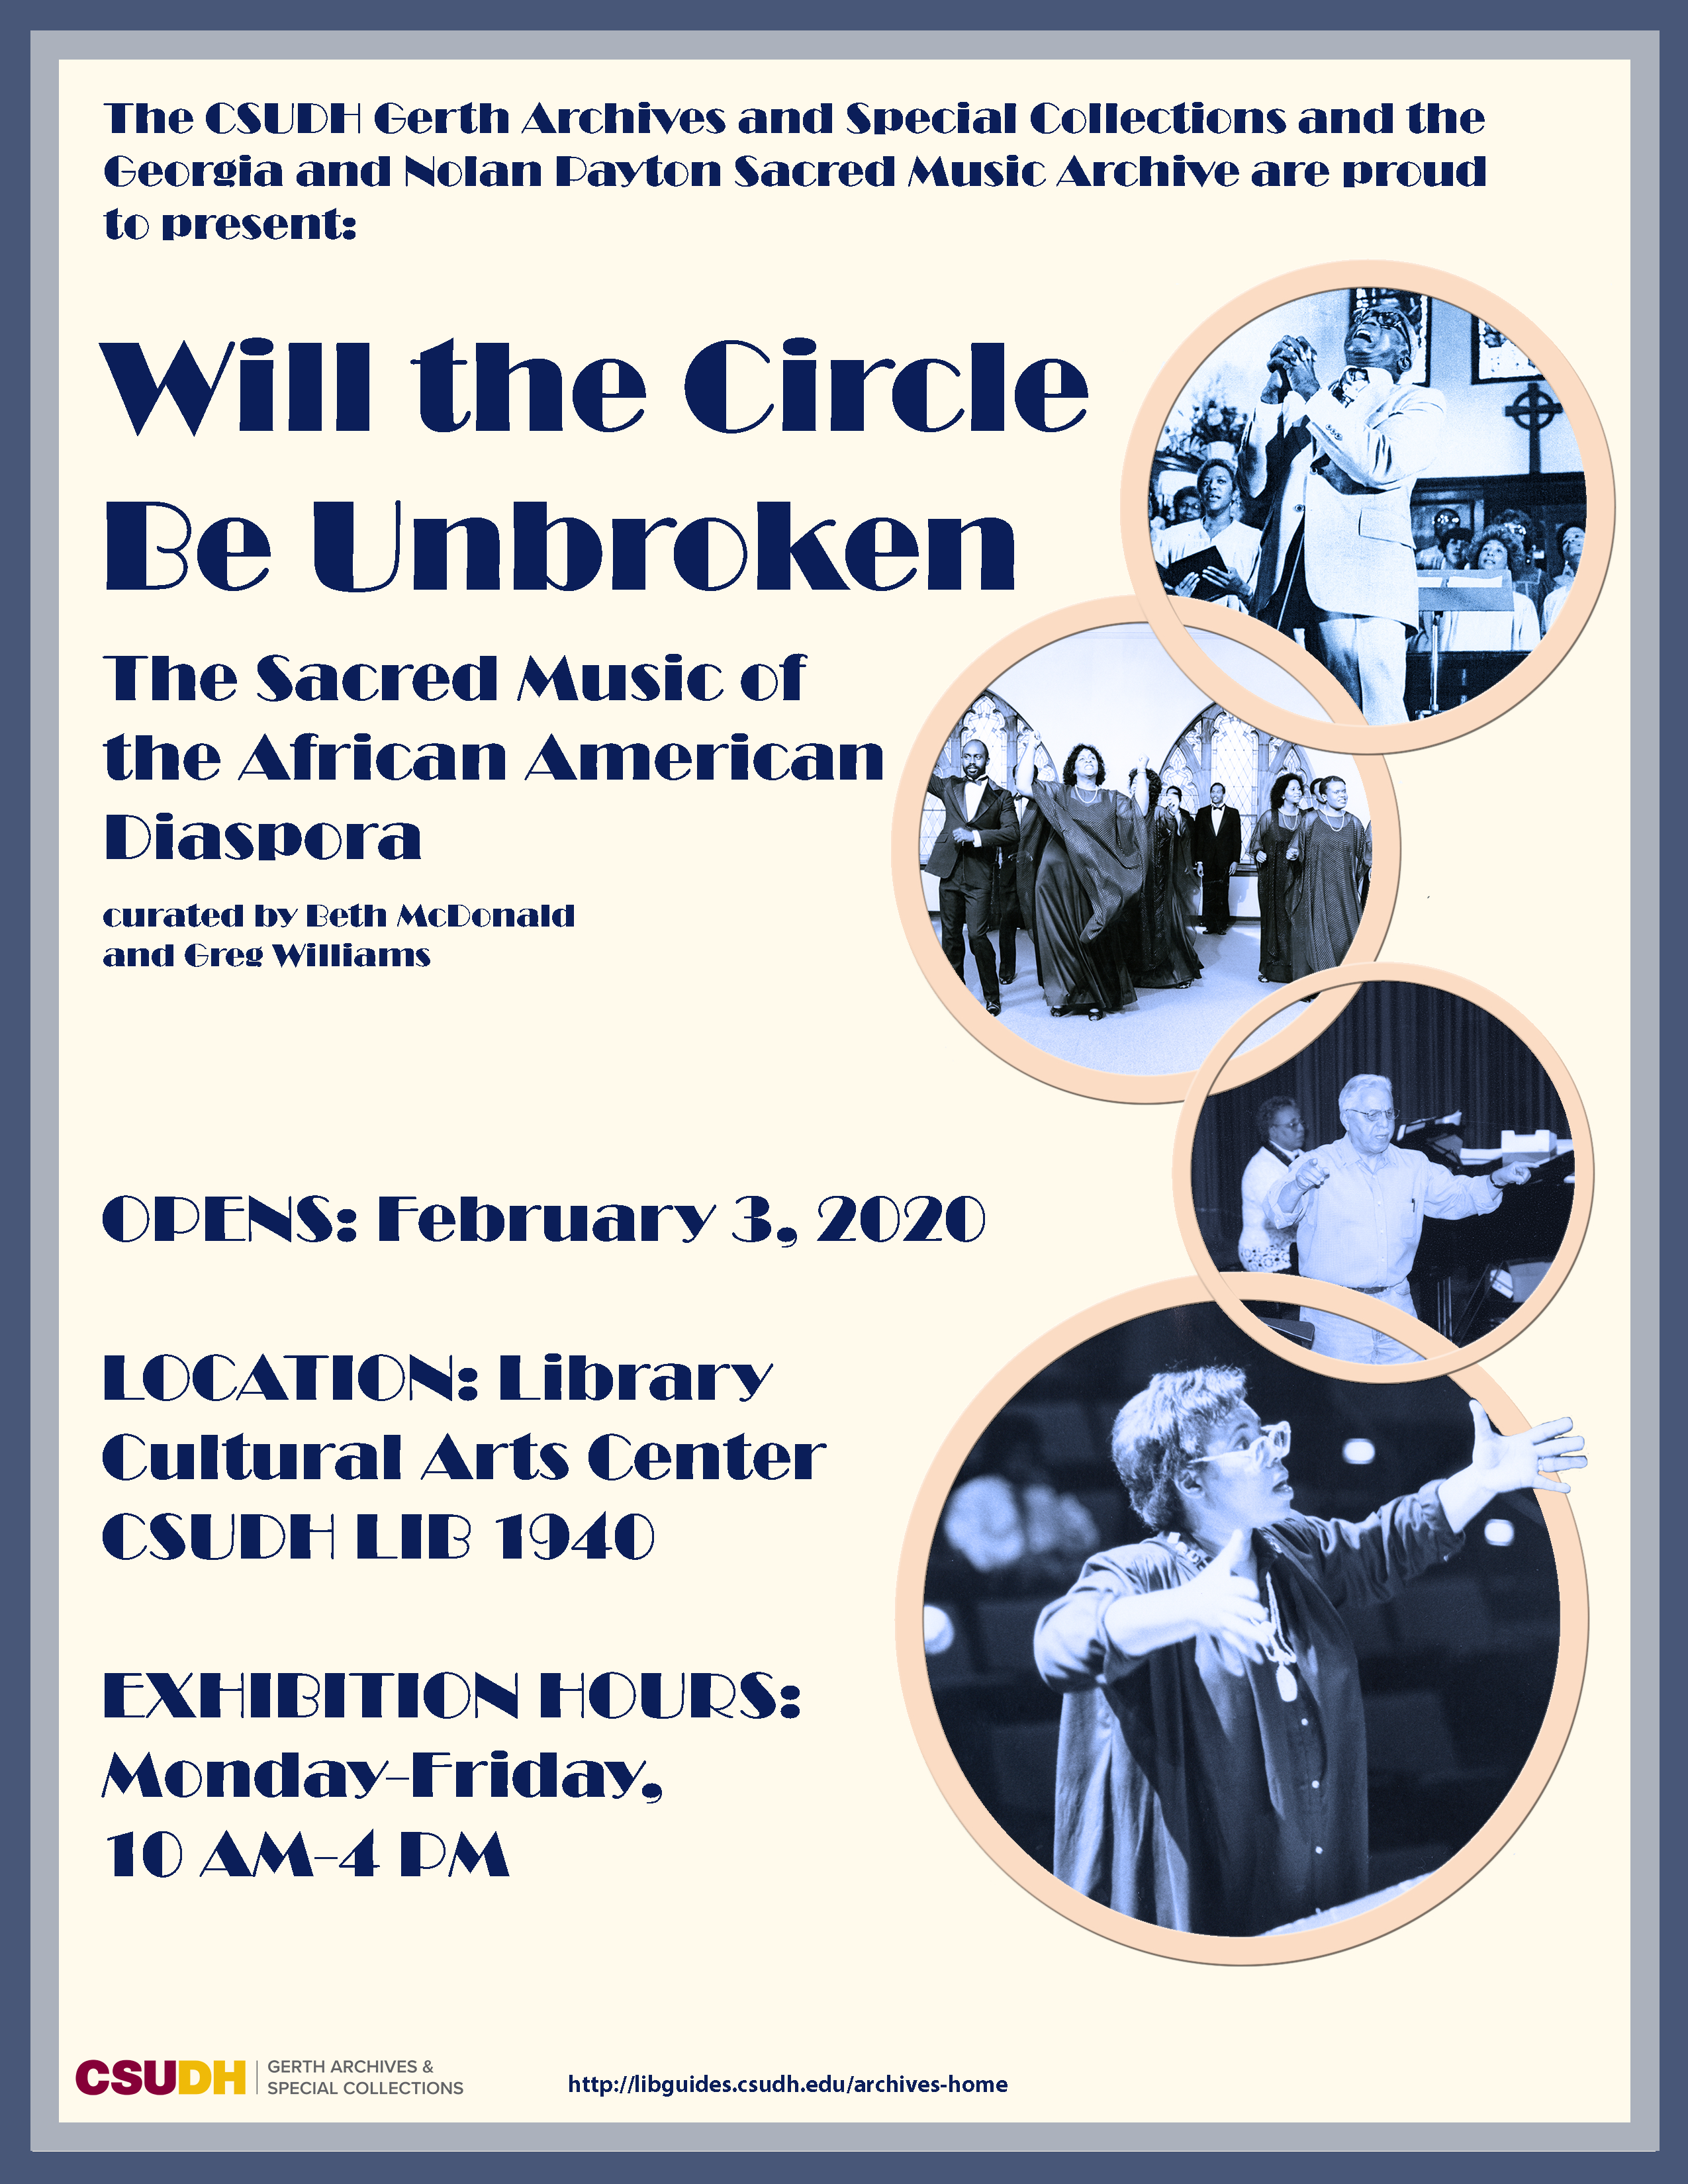 Sacred Music of the African American Diaspora Exhibit Flyer